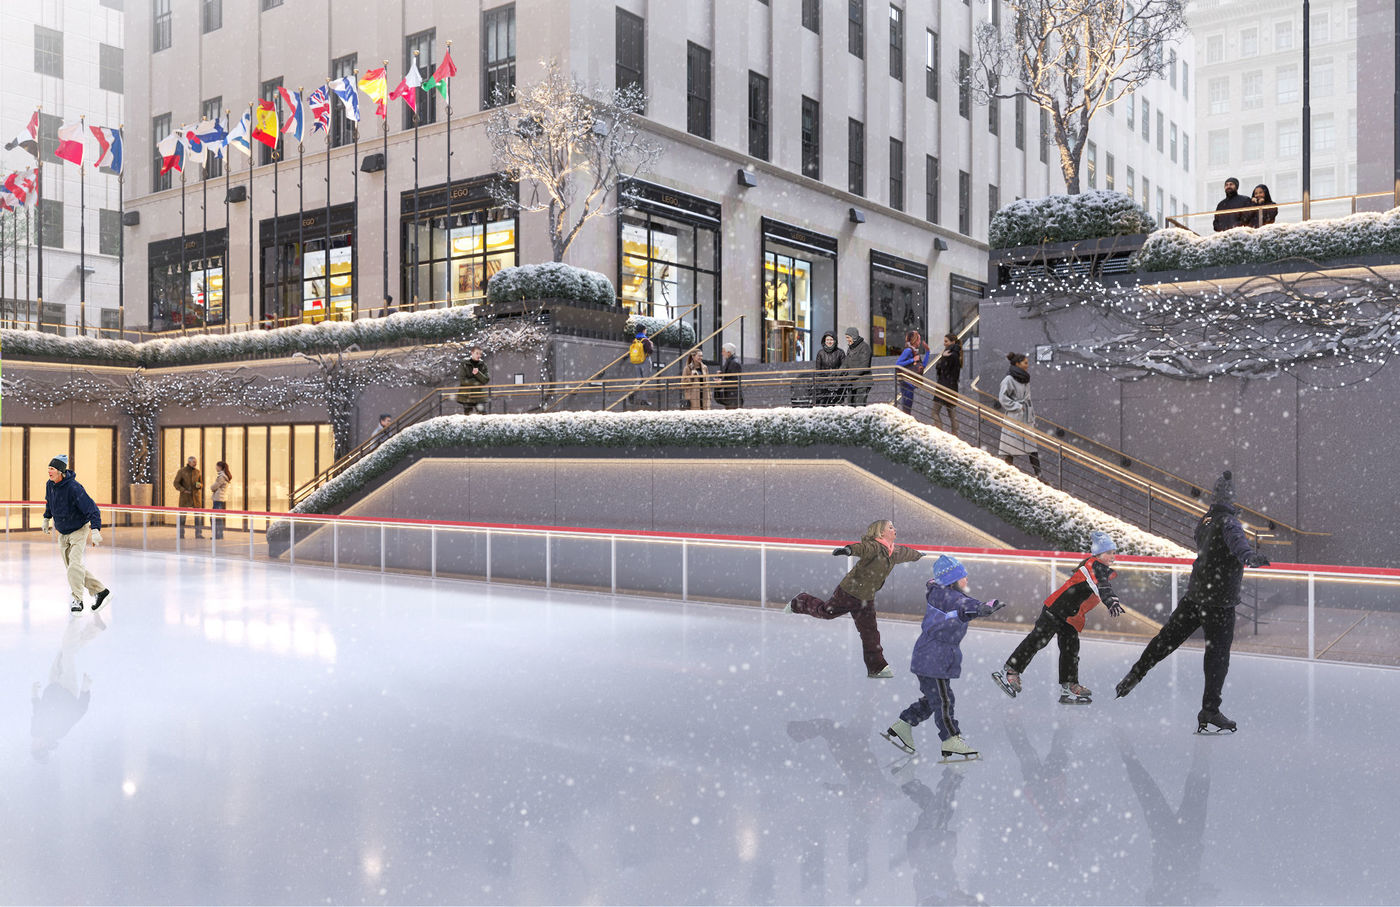 Rockefeller Center Ice Rink Renovation